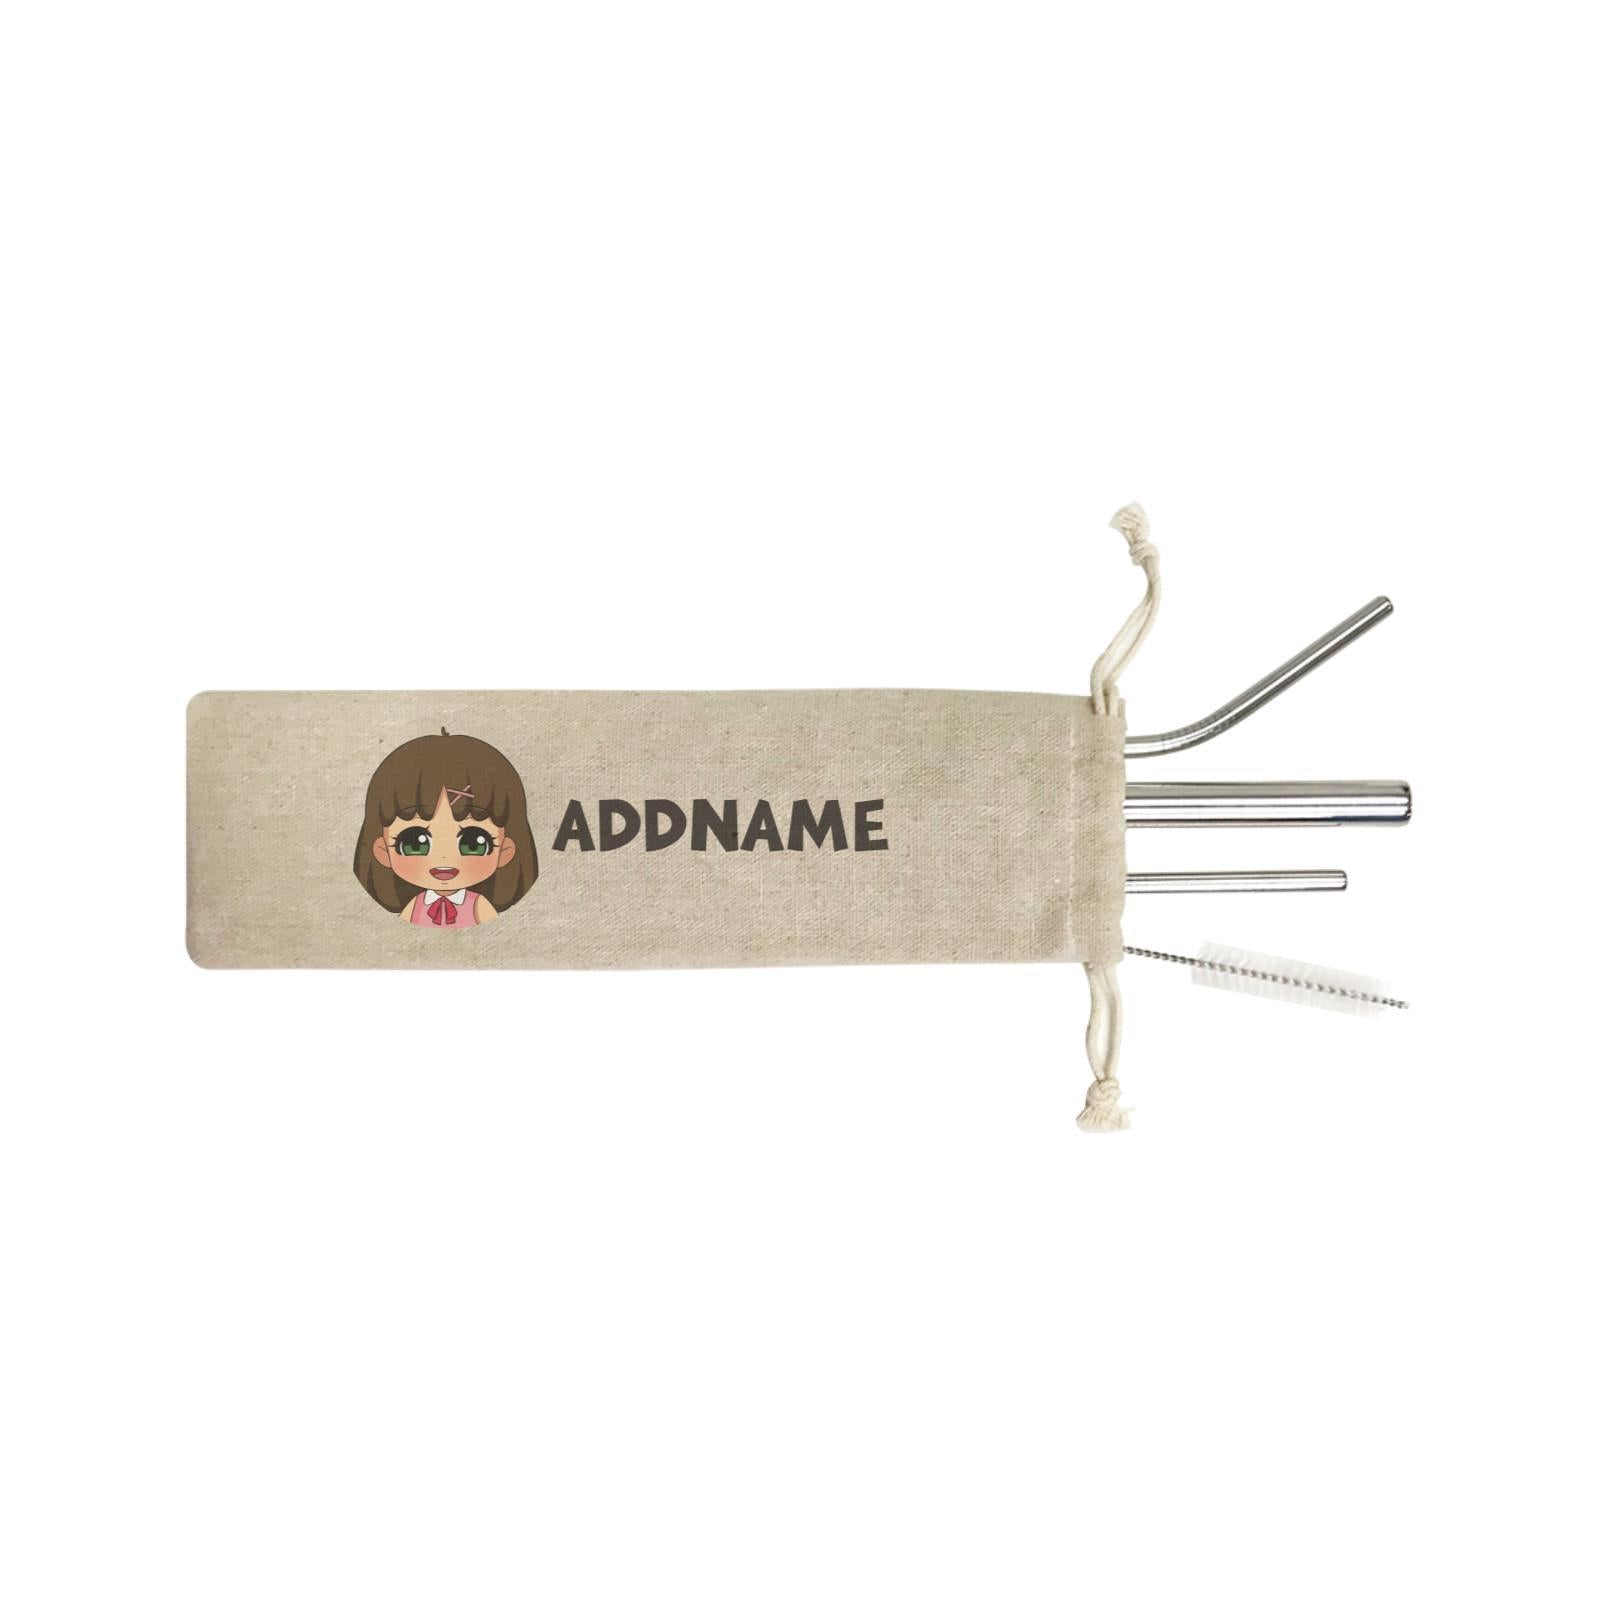 Children's Day Gift Series Little Chinese Girl Addname SB 4-in-1 Stainless Steel Straw Set In a Satchel